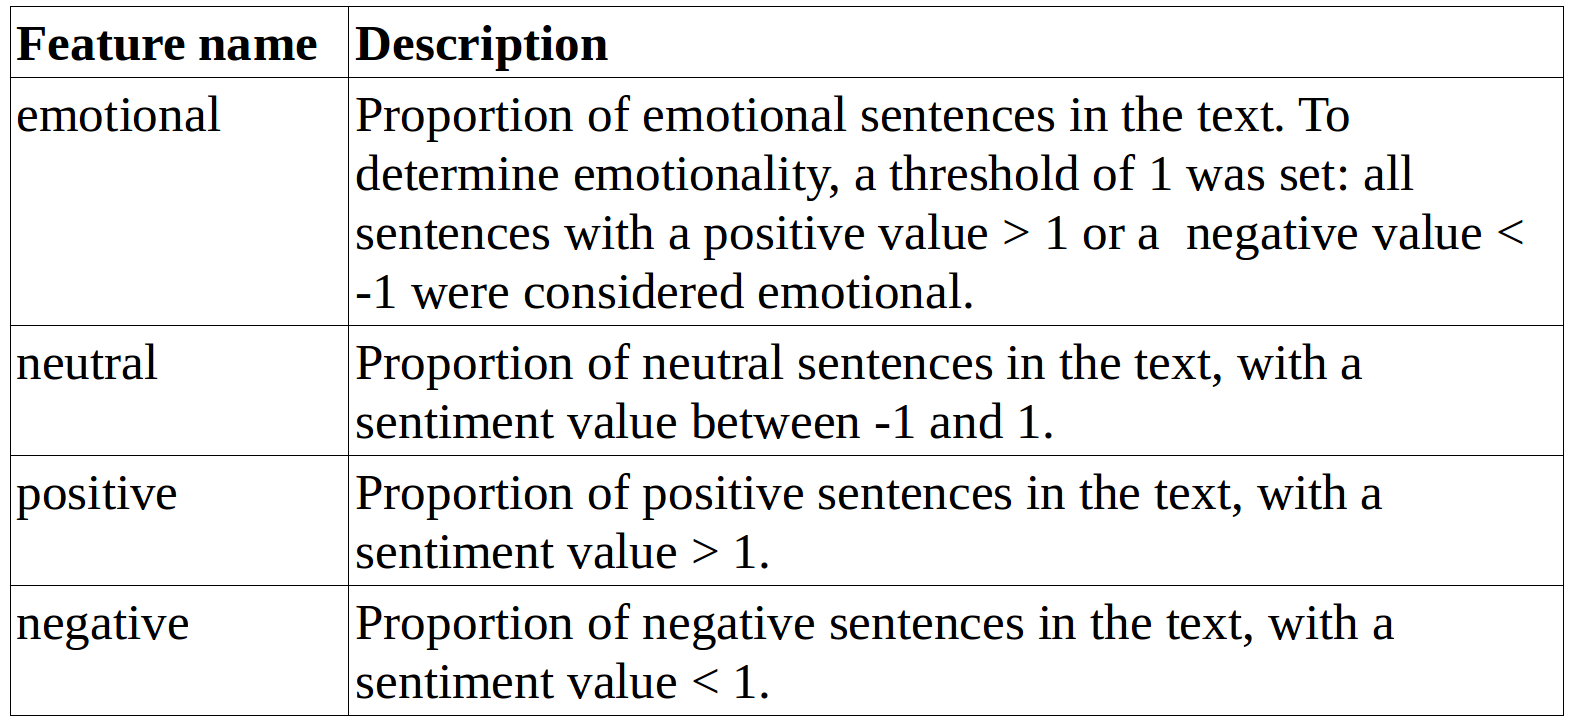 Additional features for the Sentiment Analysis